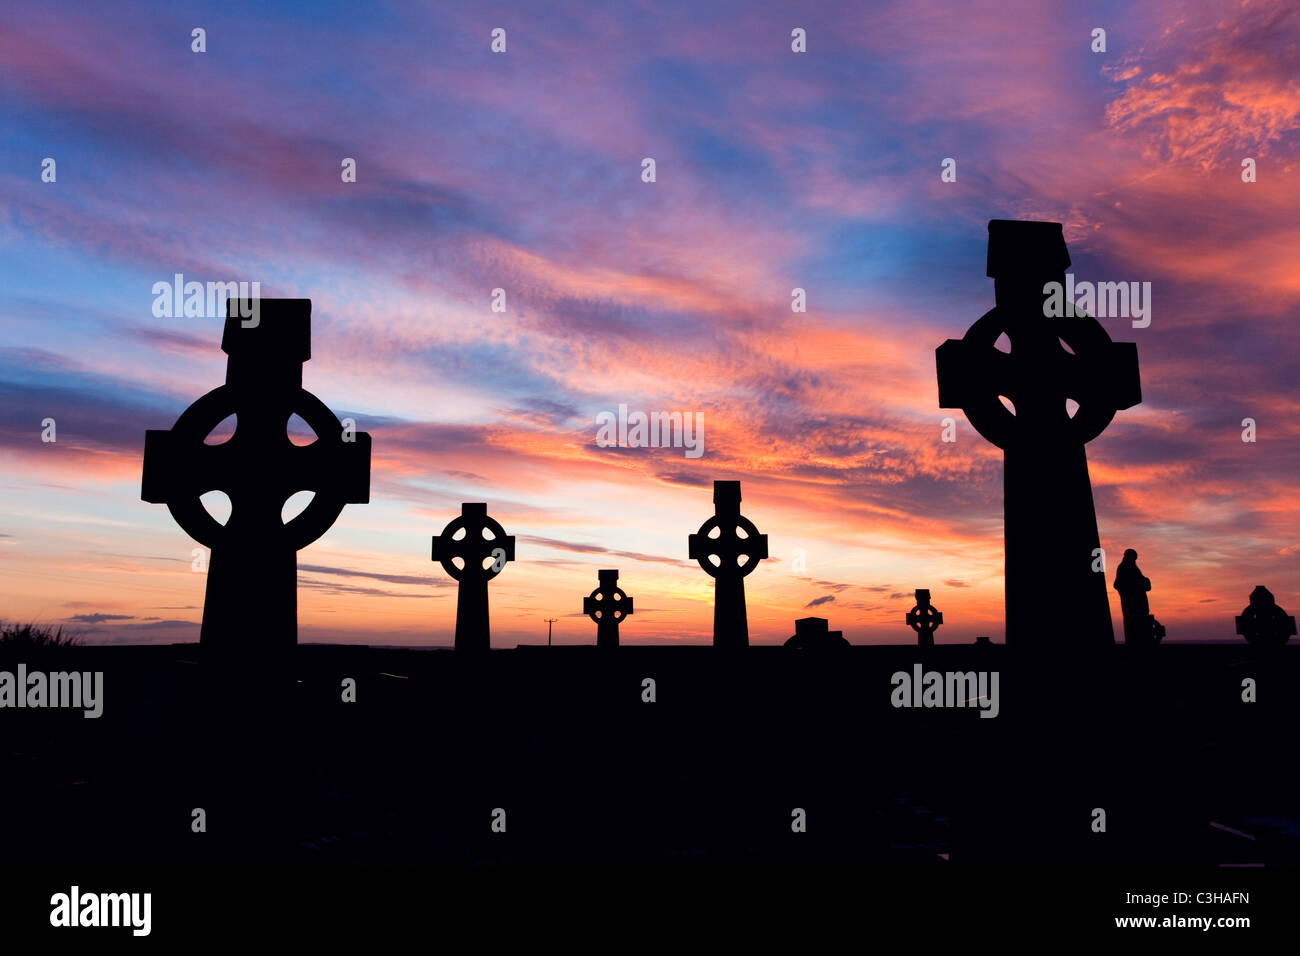 Celtic crosses in a cemetery at sunset, Enniscrone, County Sligo, Ireland. - Stock Image